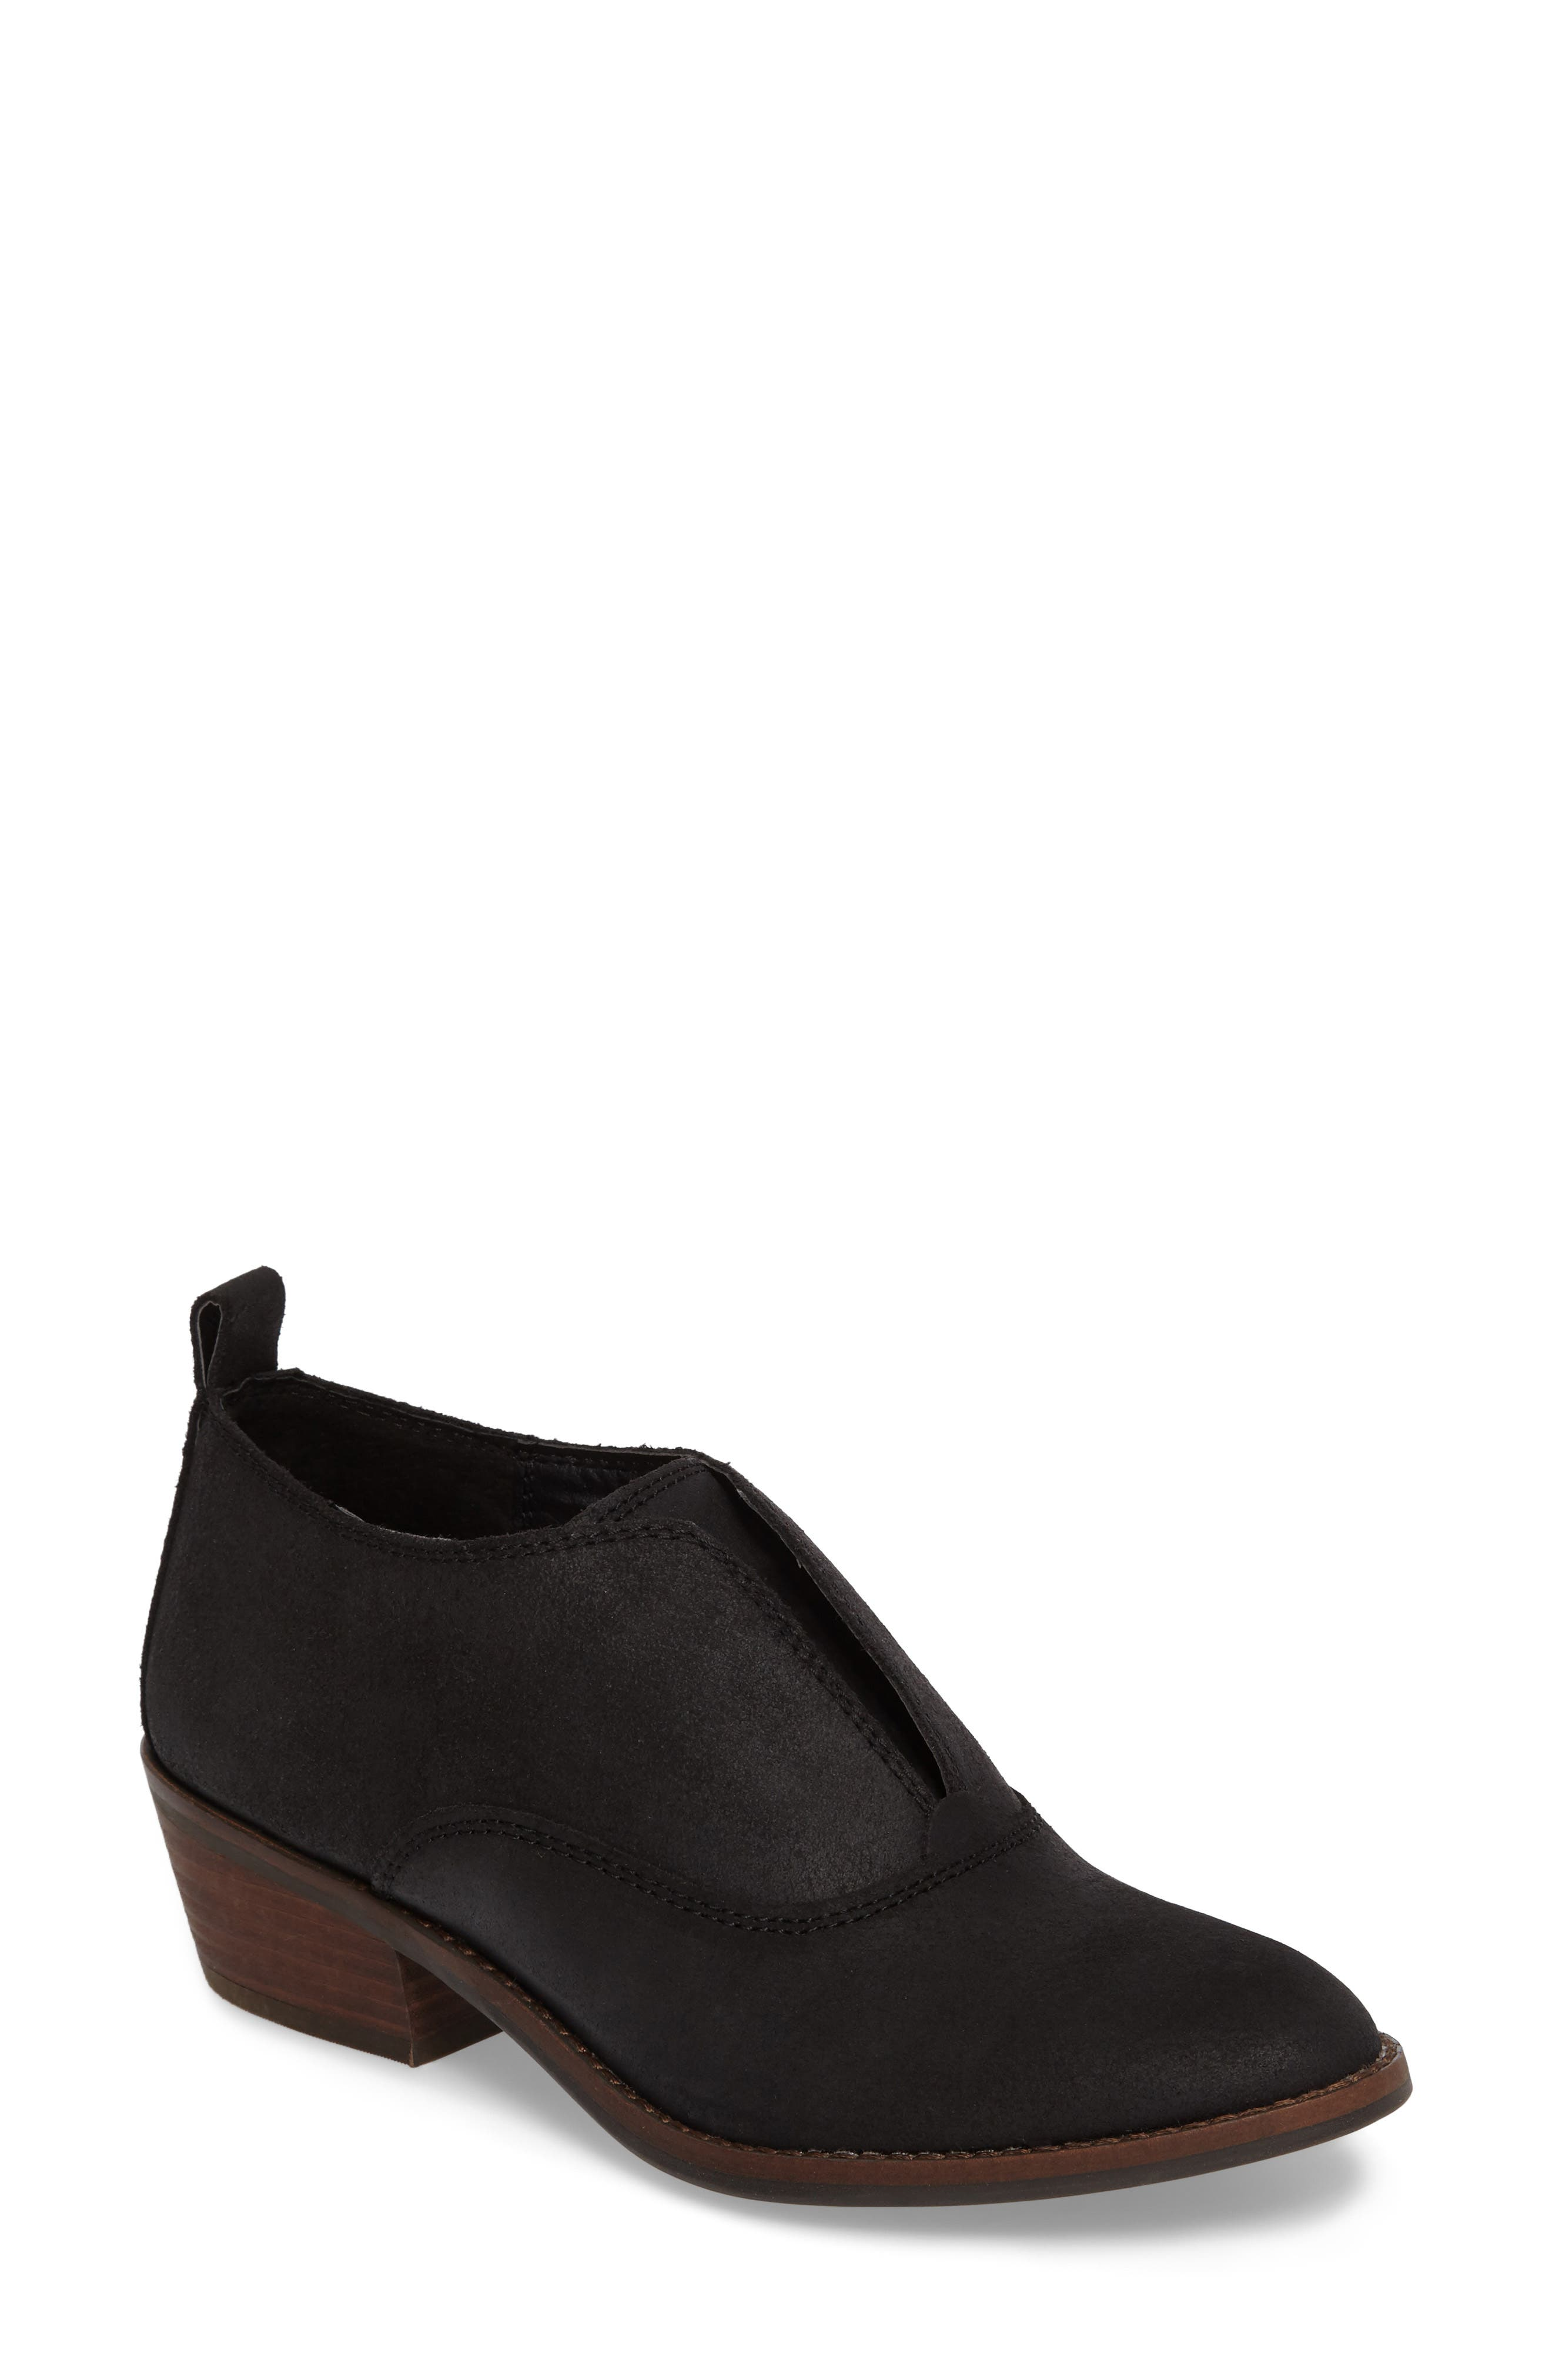 Main Image - Lucky Brand Fimberly Oxford (Women)